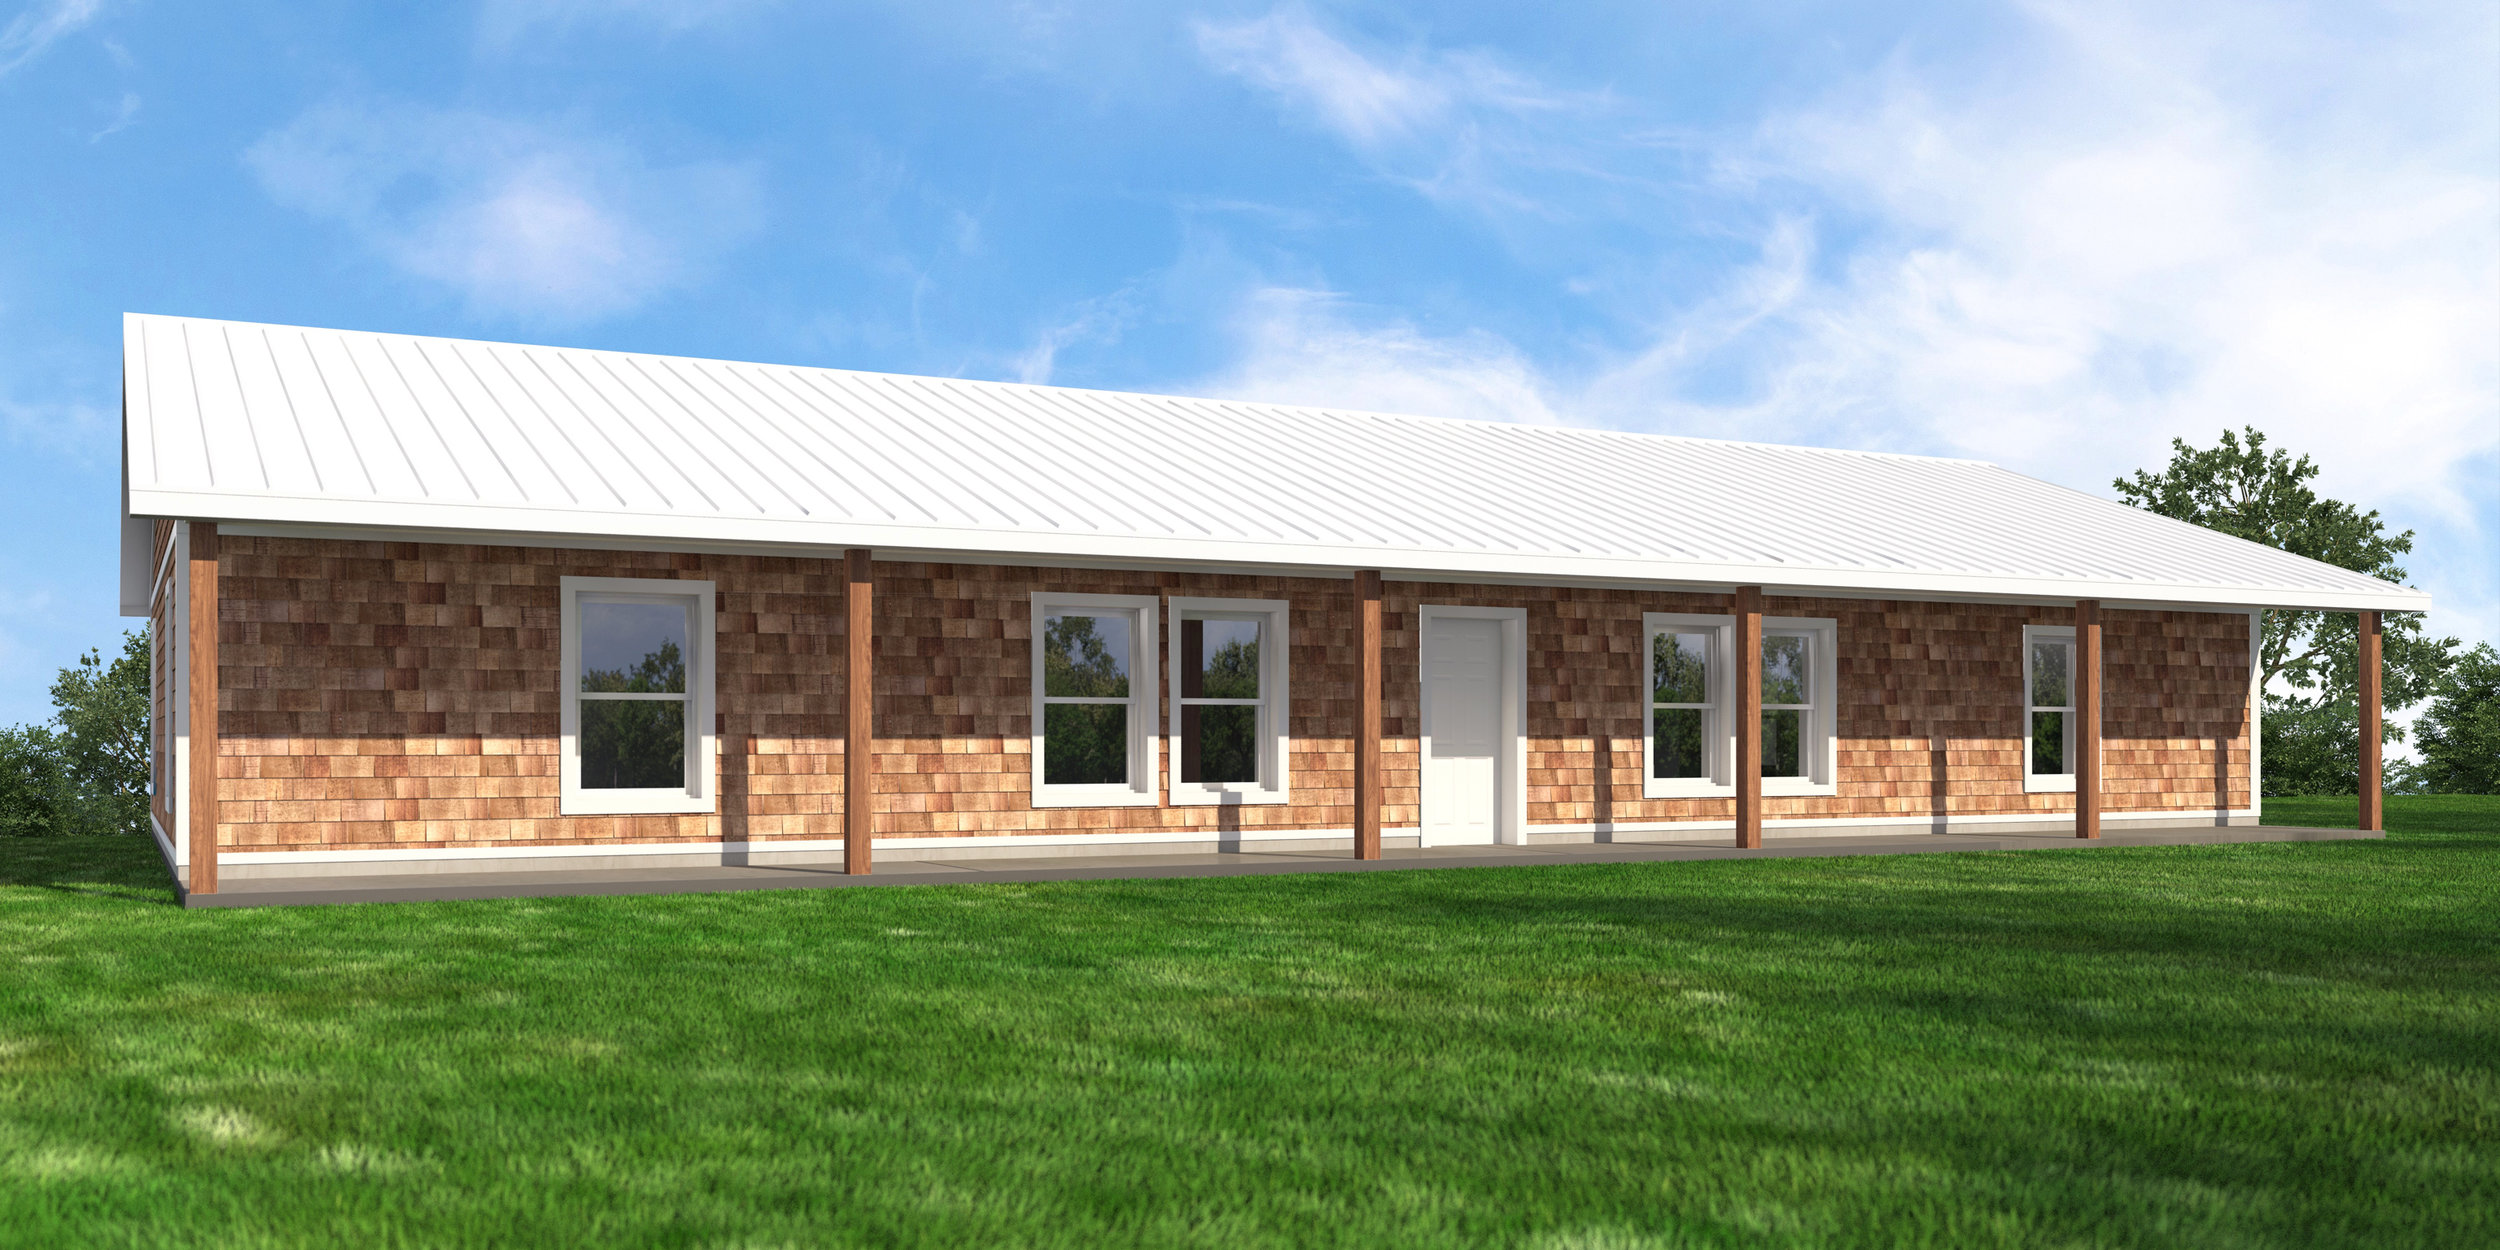 Simply Smiles spent 10-years developing a custom home design that is appropriate for the extreme South Dakota climate. The homes in the children's village are being constructed with the same proven methods, but at 3x the size (2,100 square feet), as seen in the rendering here.